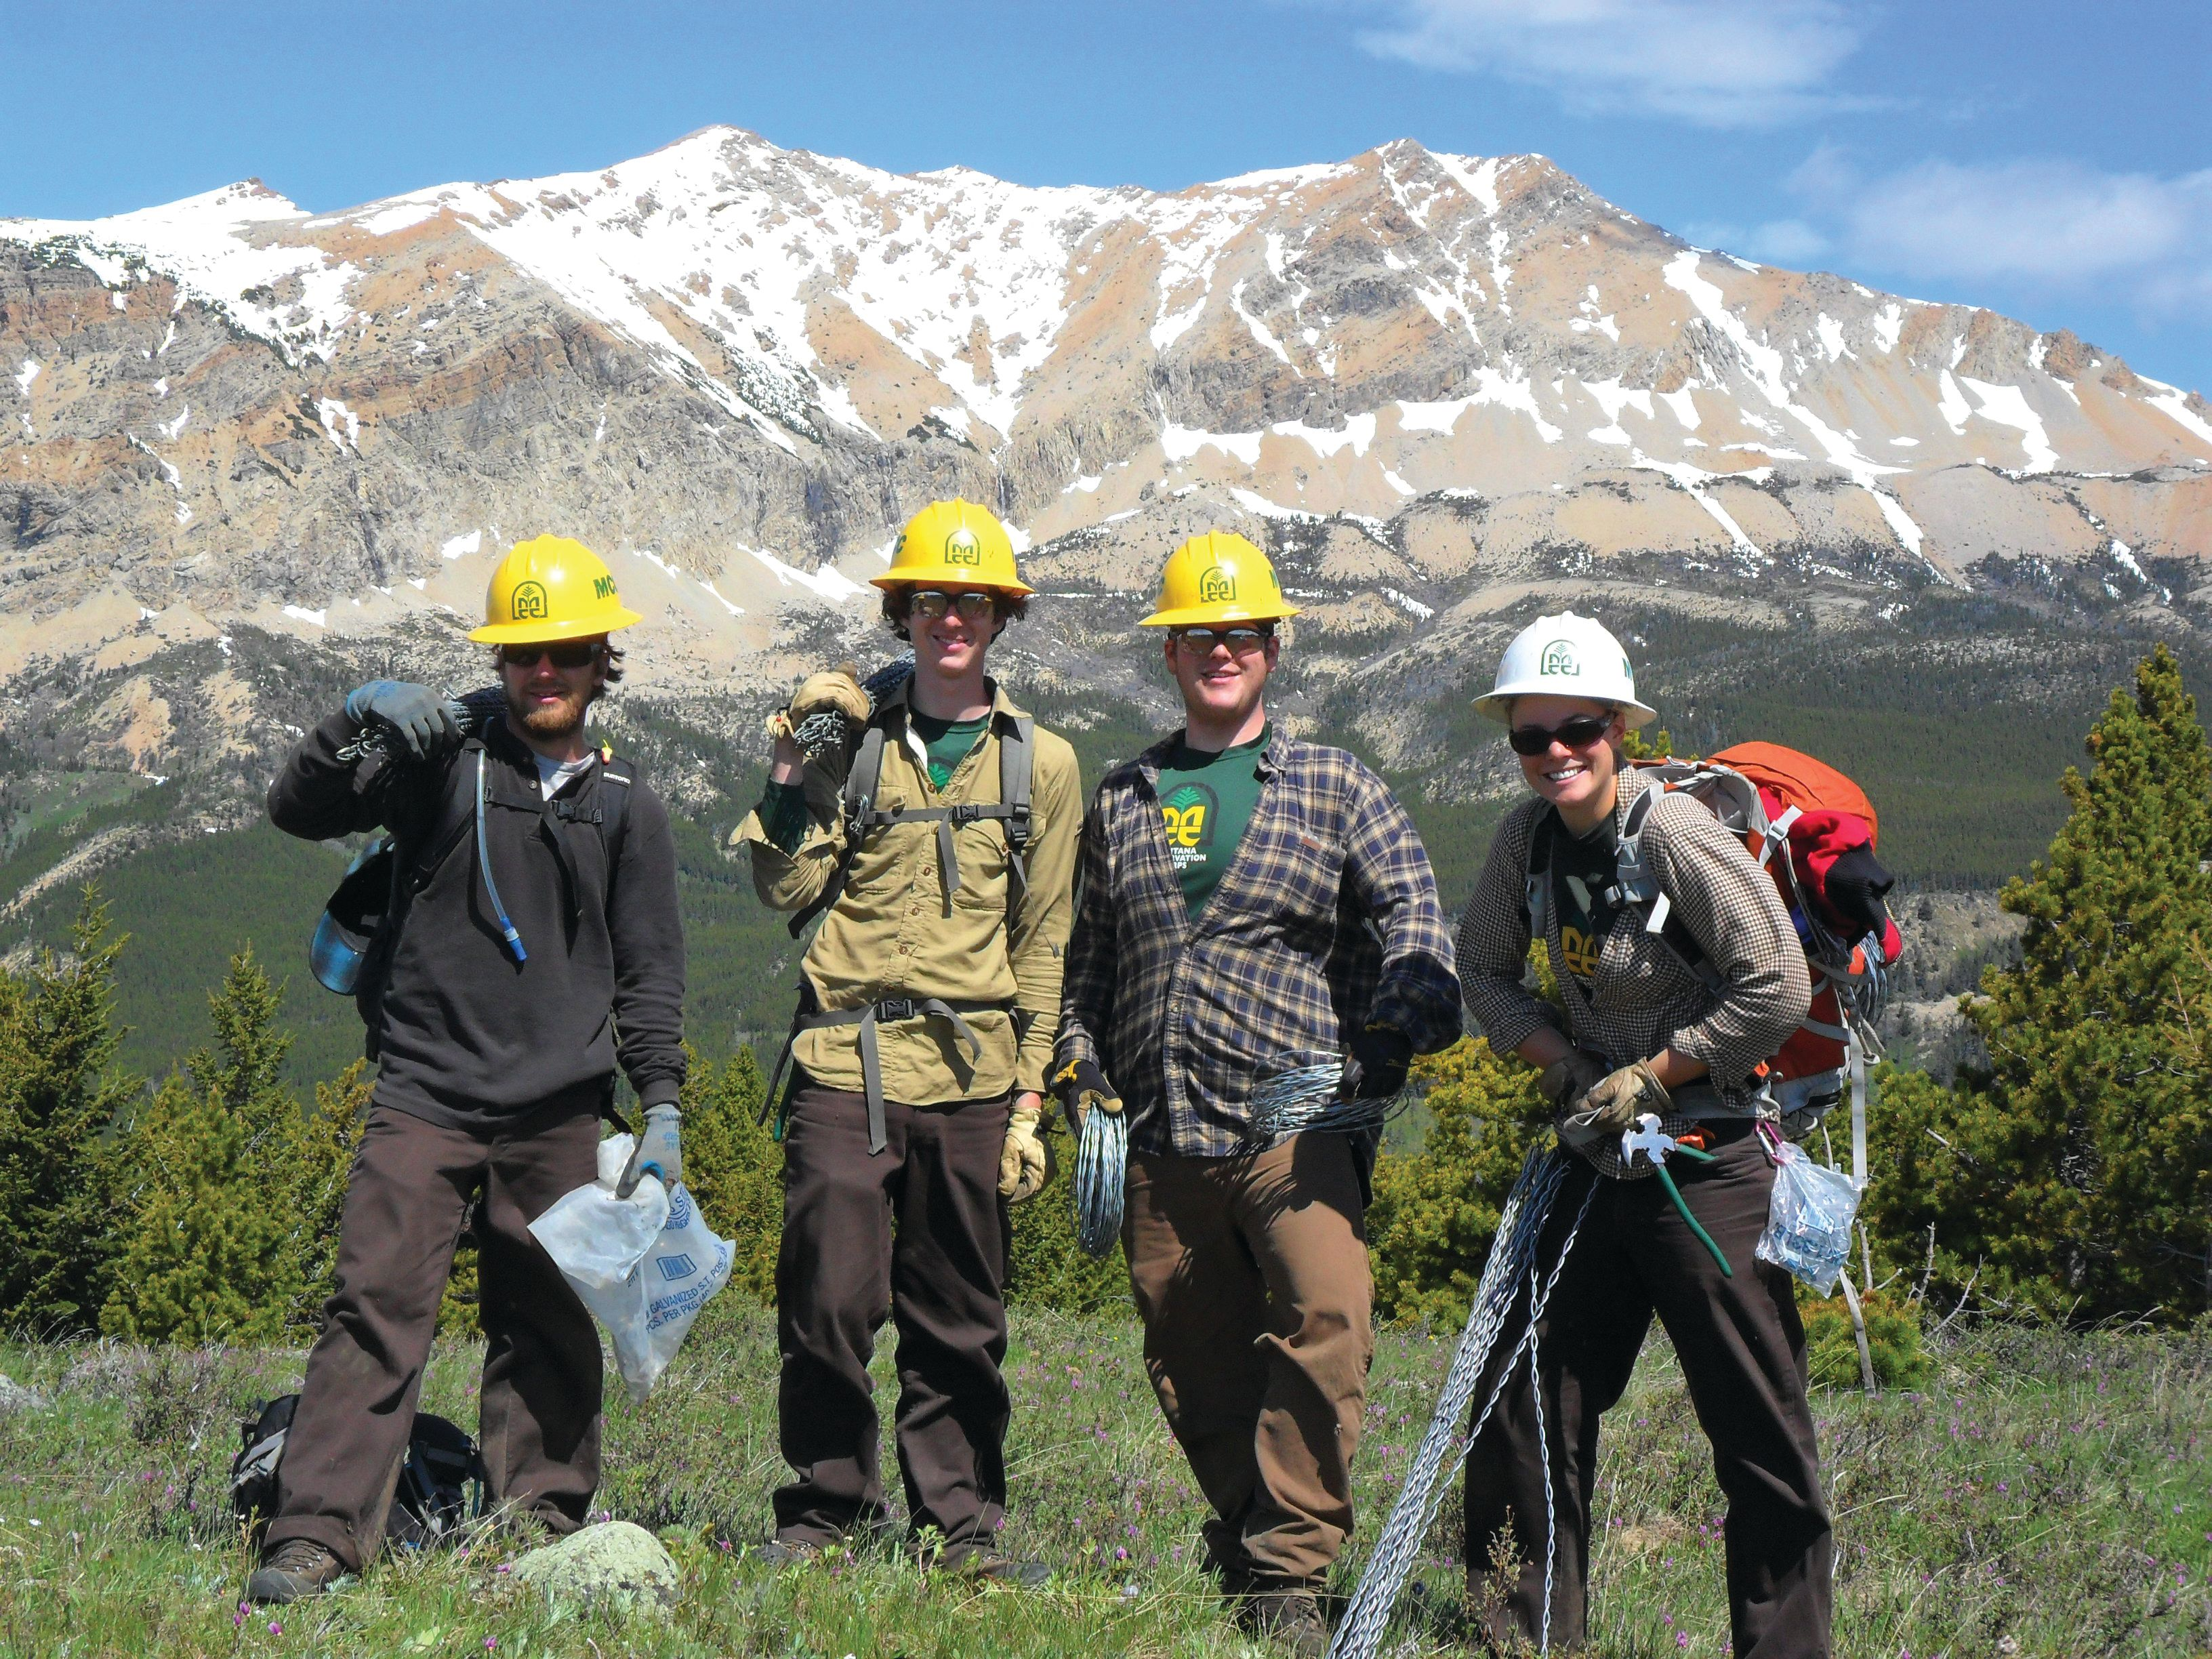 beautiful white capped mountain with 3 young men in yellow MCC helmets and a female in a white helmet signifying she is the crew Leader